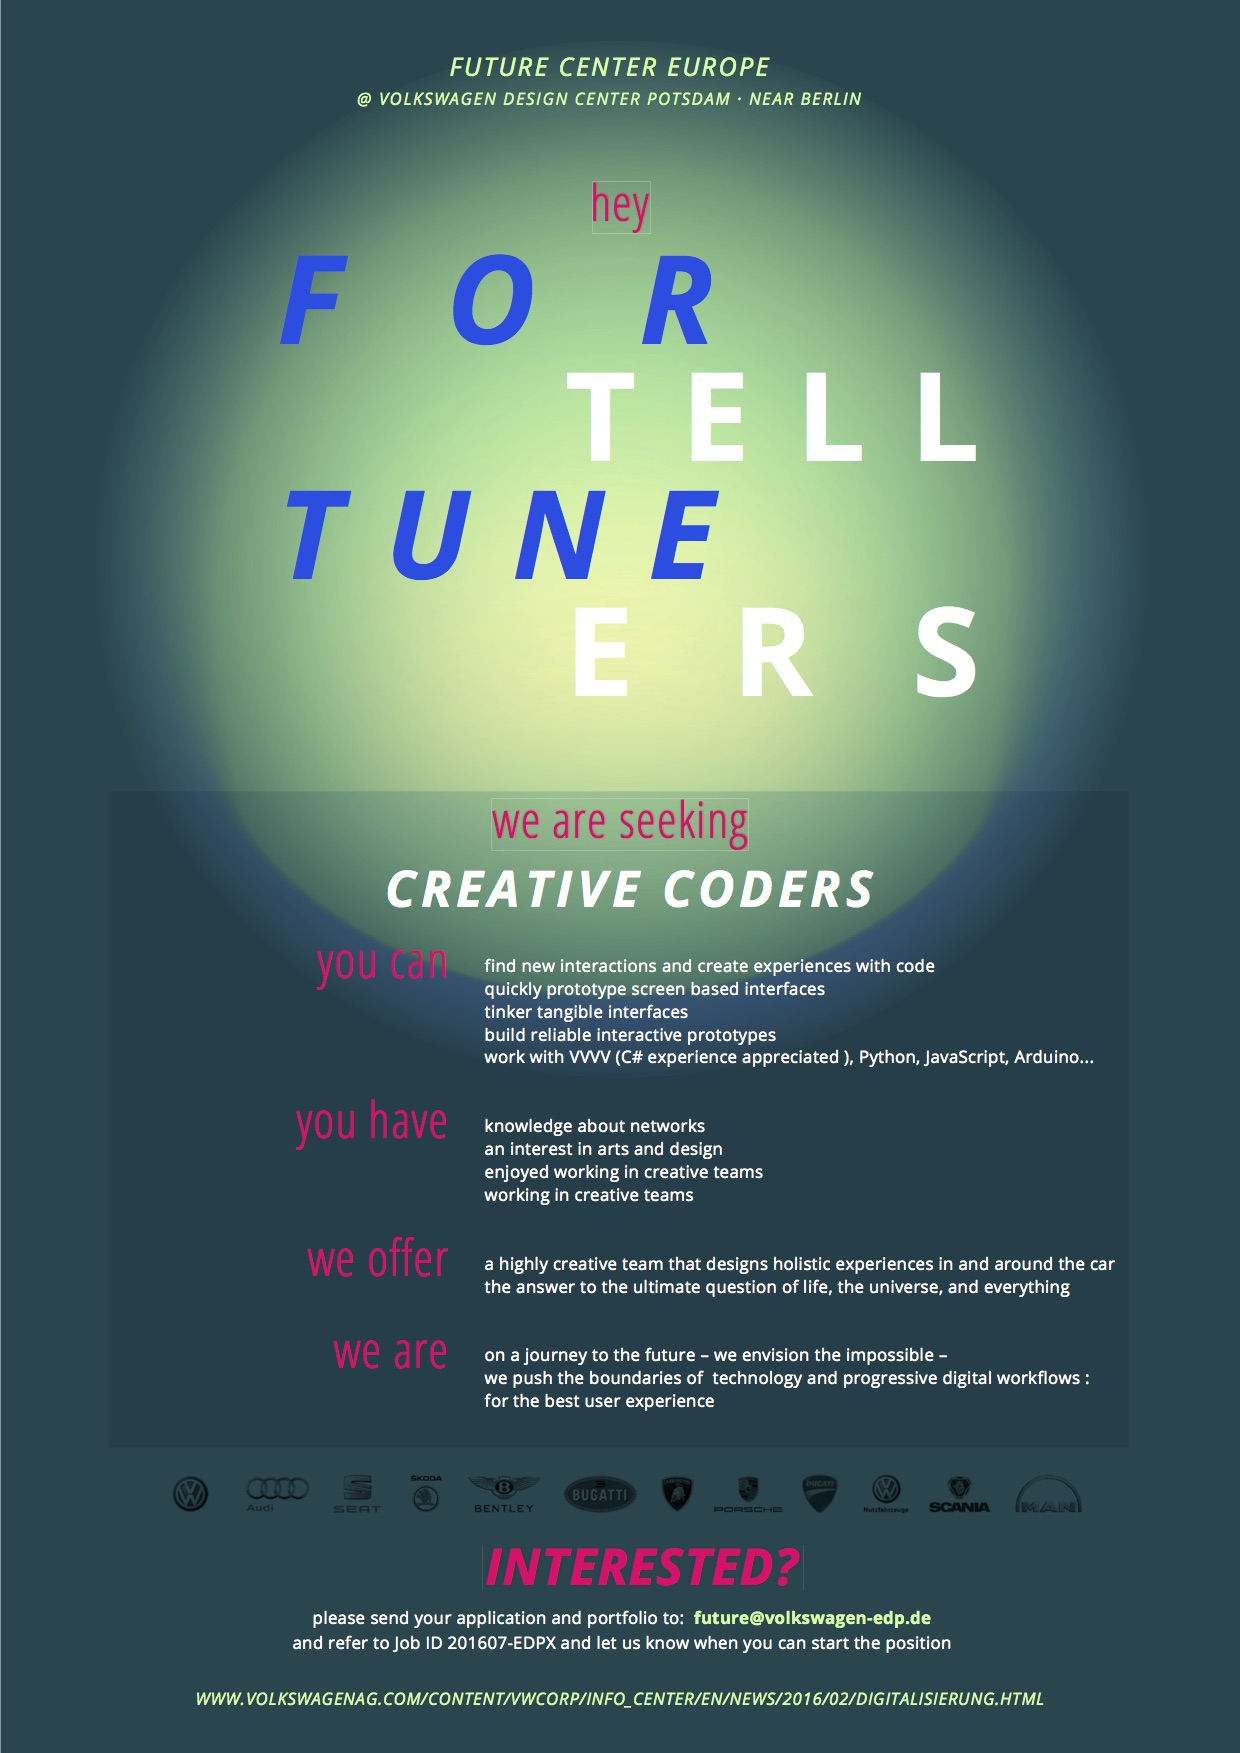 Creative Coders wanted